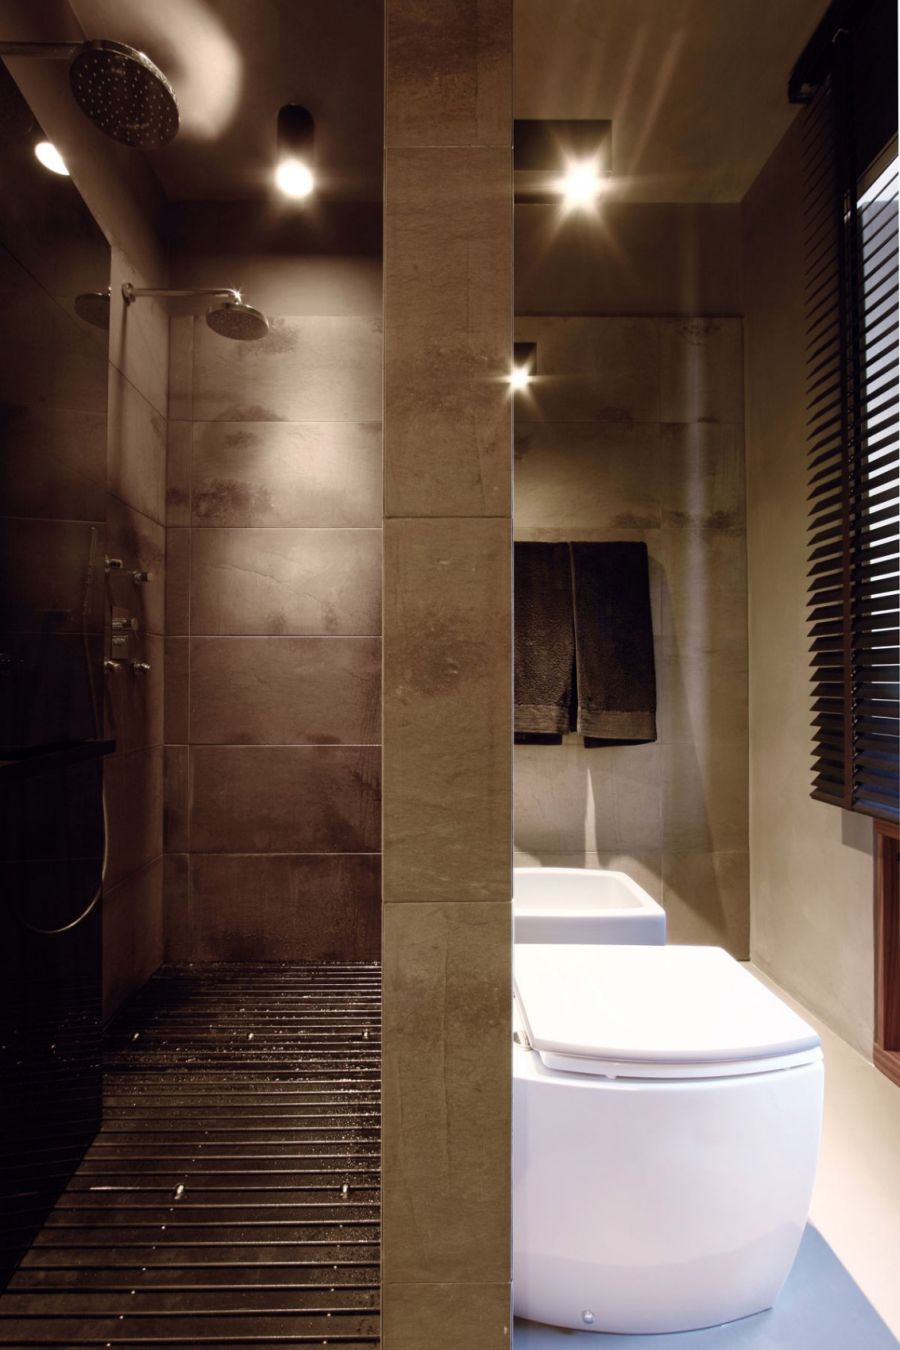 Compact shower area